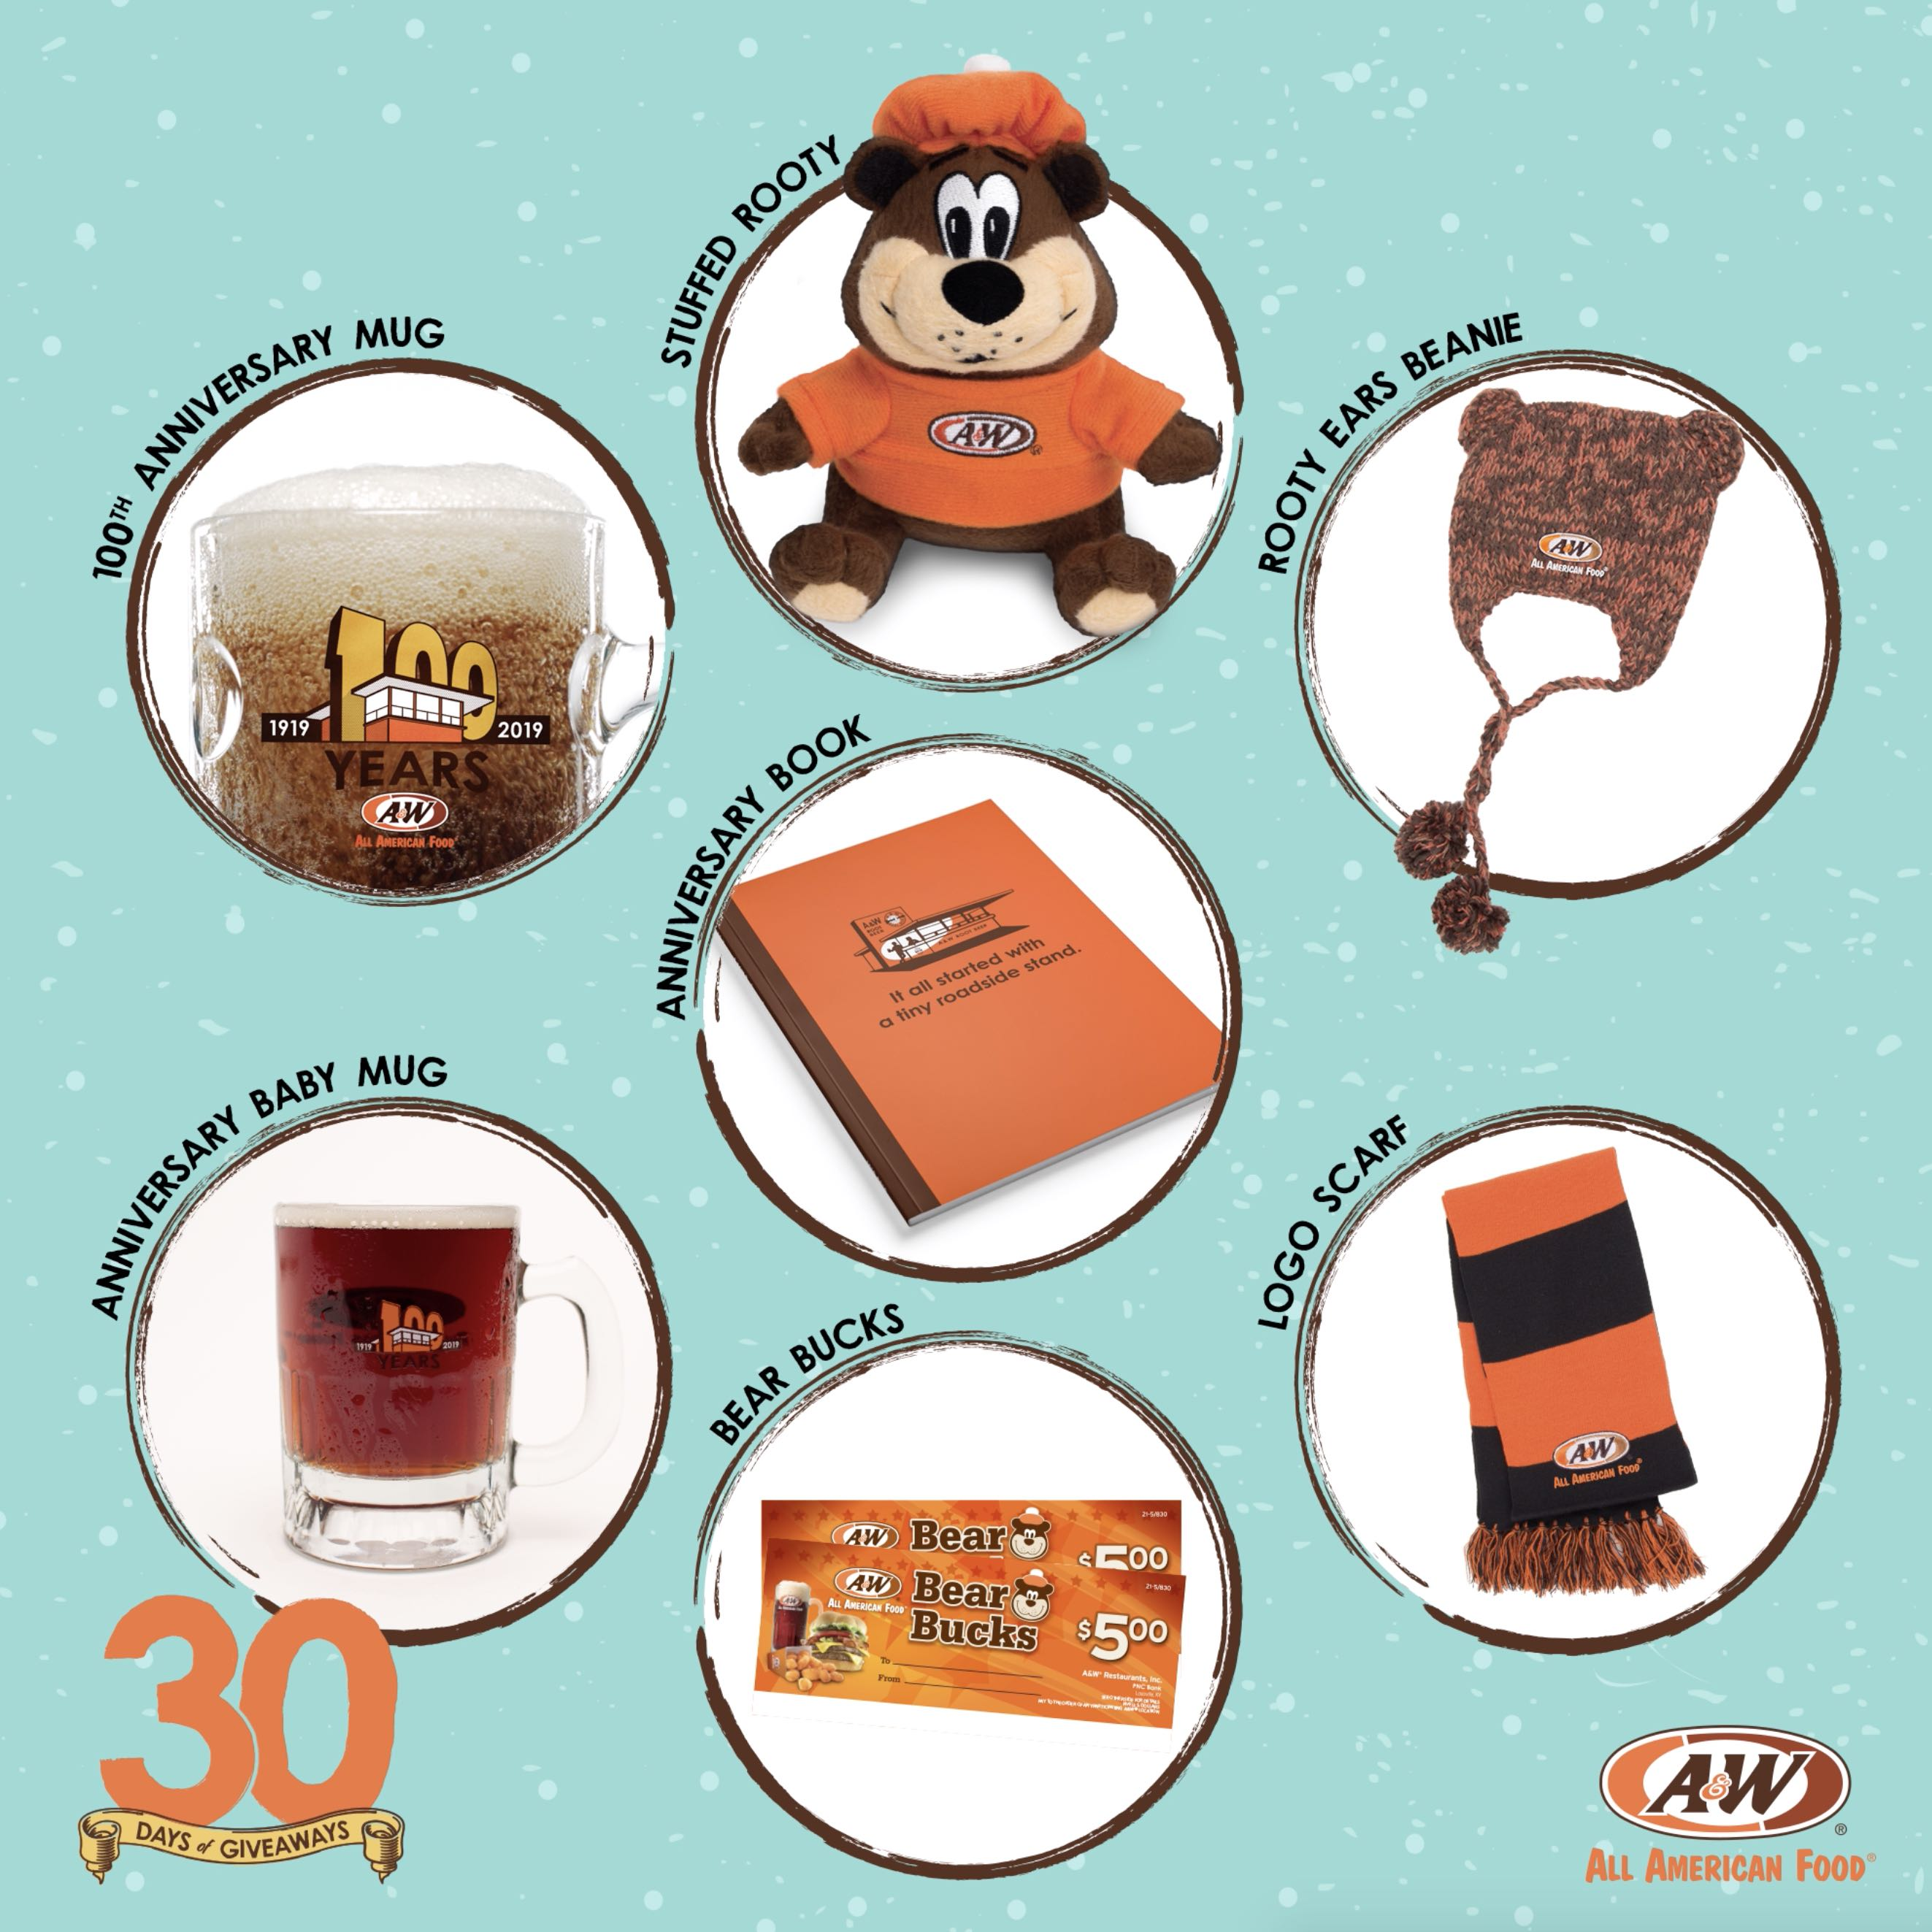 Bear Bucks, Stuffed Rooty, 100th Anniversary Baby Mug, 100th Anniversary Collector's Mug, Scarf, Rooty Ear Beanie, 100th Anniversary Book on a blue background. 30 Days of Giveaways logo is on the bottom left side of the image with A&W Restaurants logo on the bottom right.